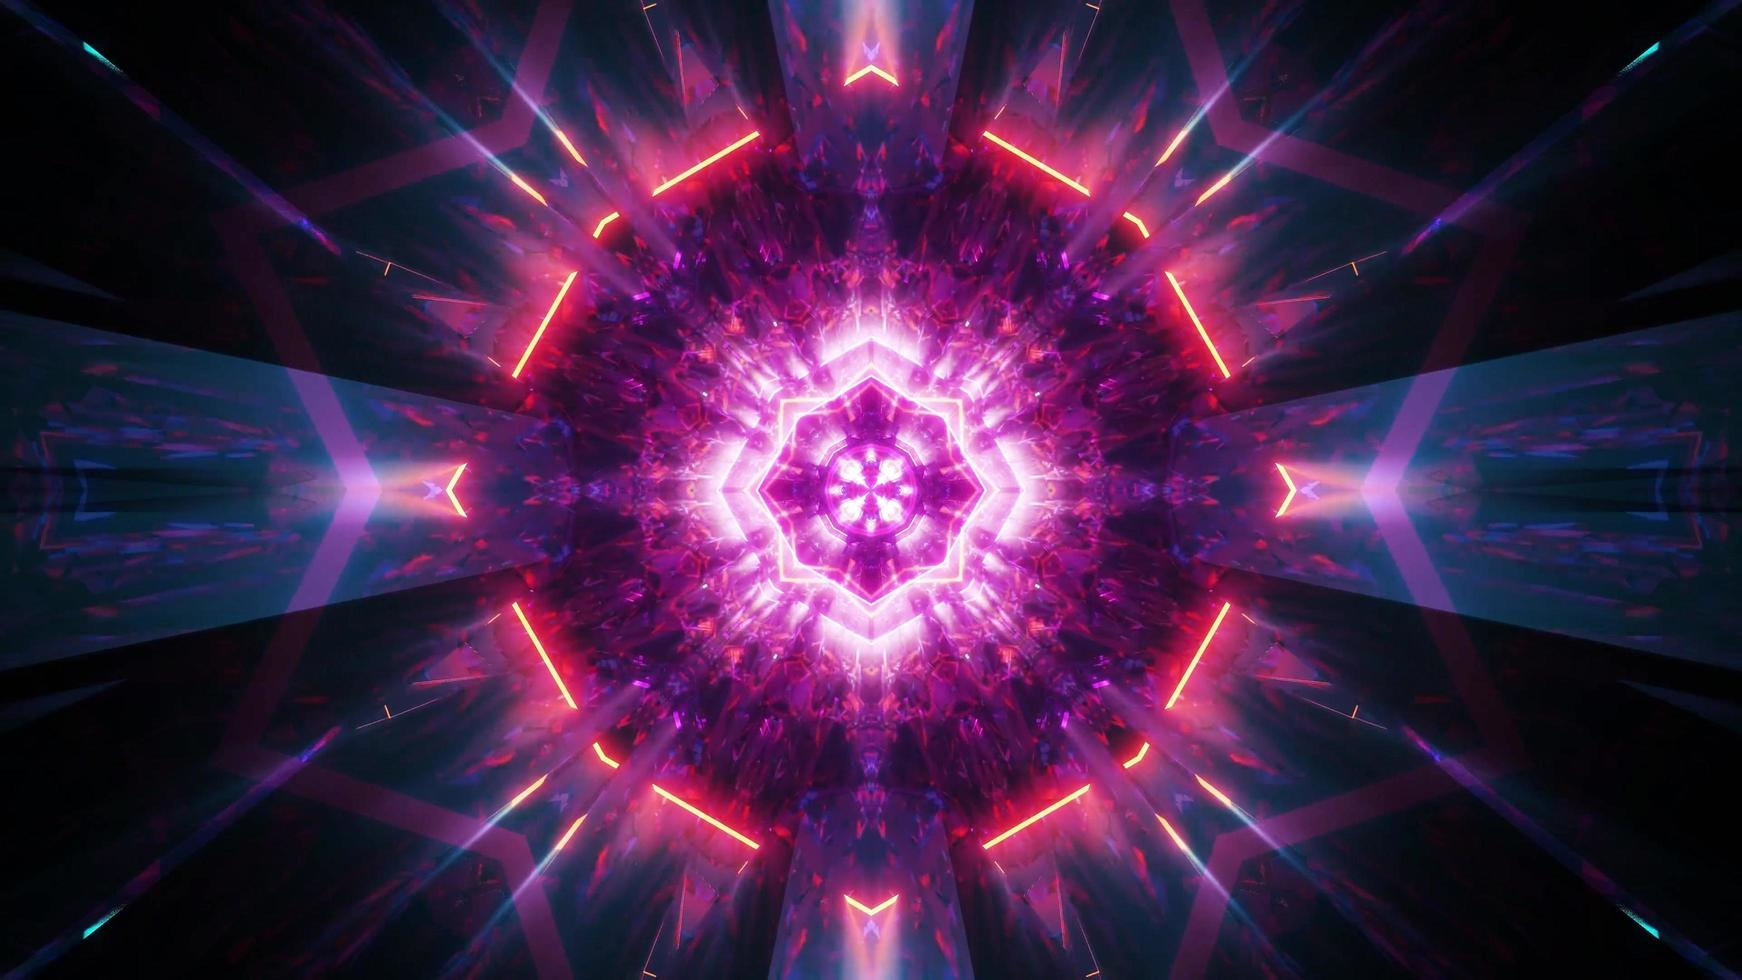 Abstract glowing holy shine 3d illustration visual background wallpaper design artwork photo